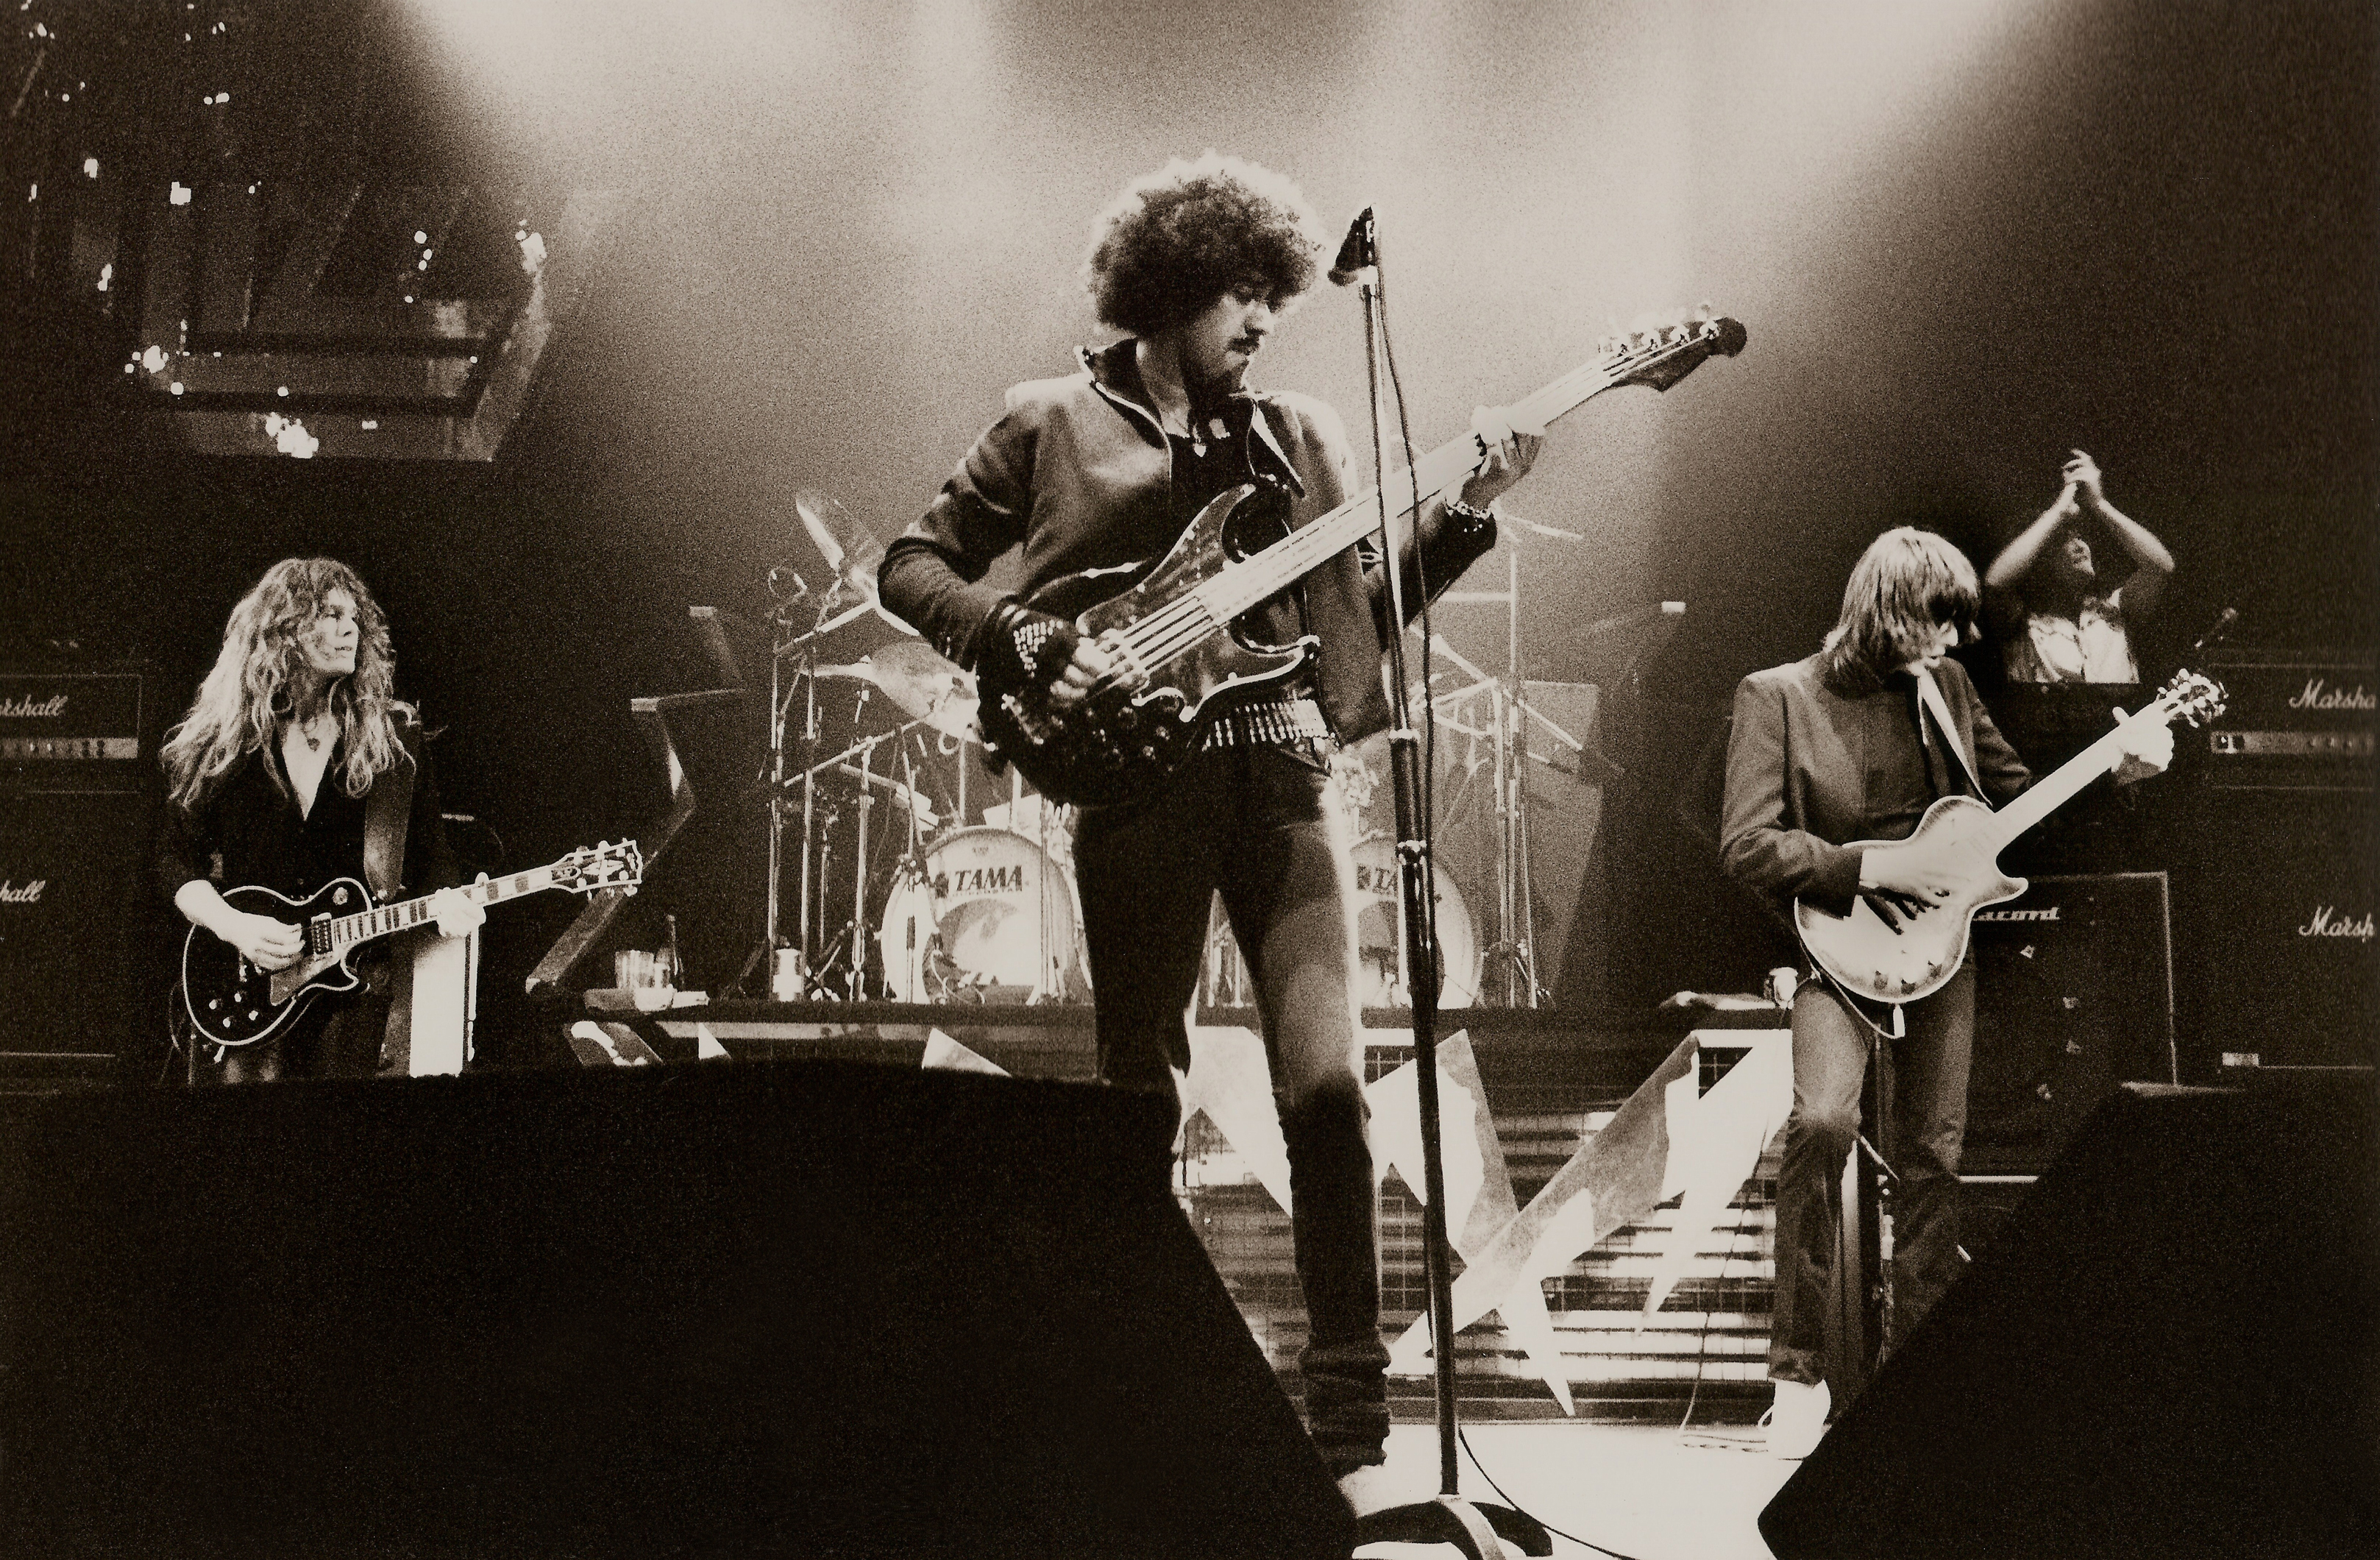 Thin lizzy -  Waiting for an Alibi (The Collection)